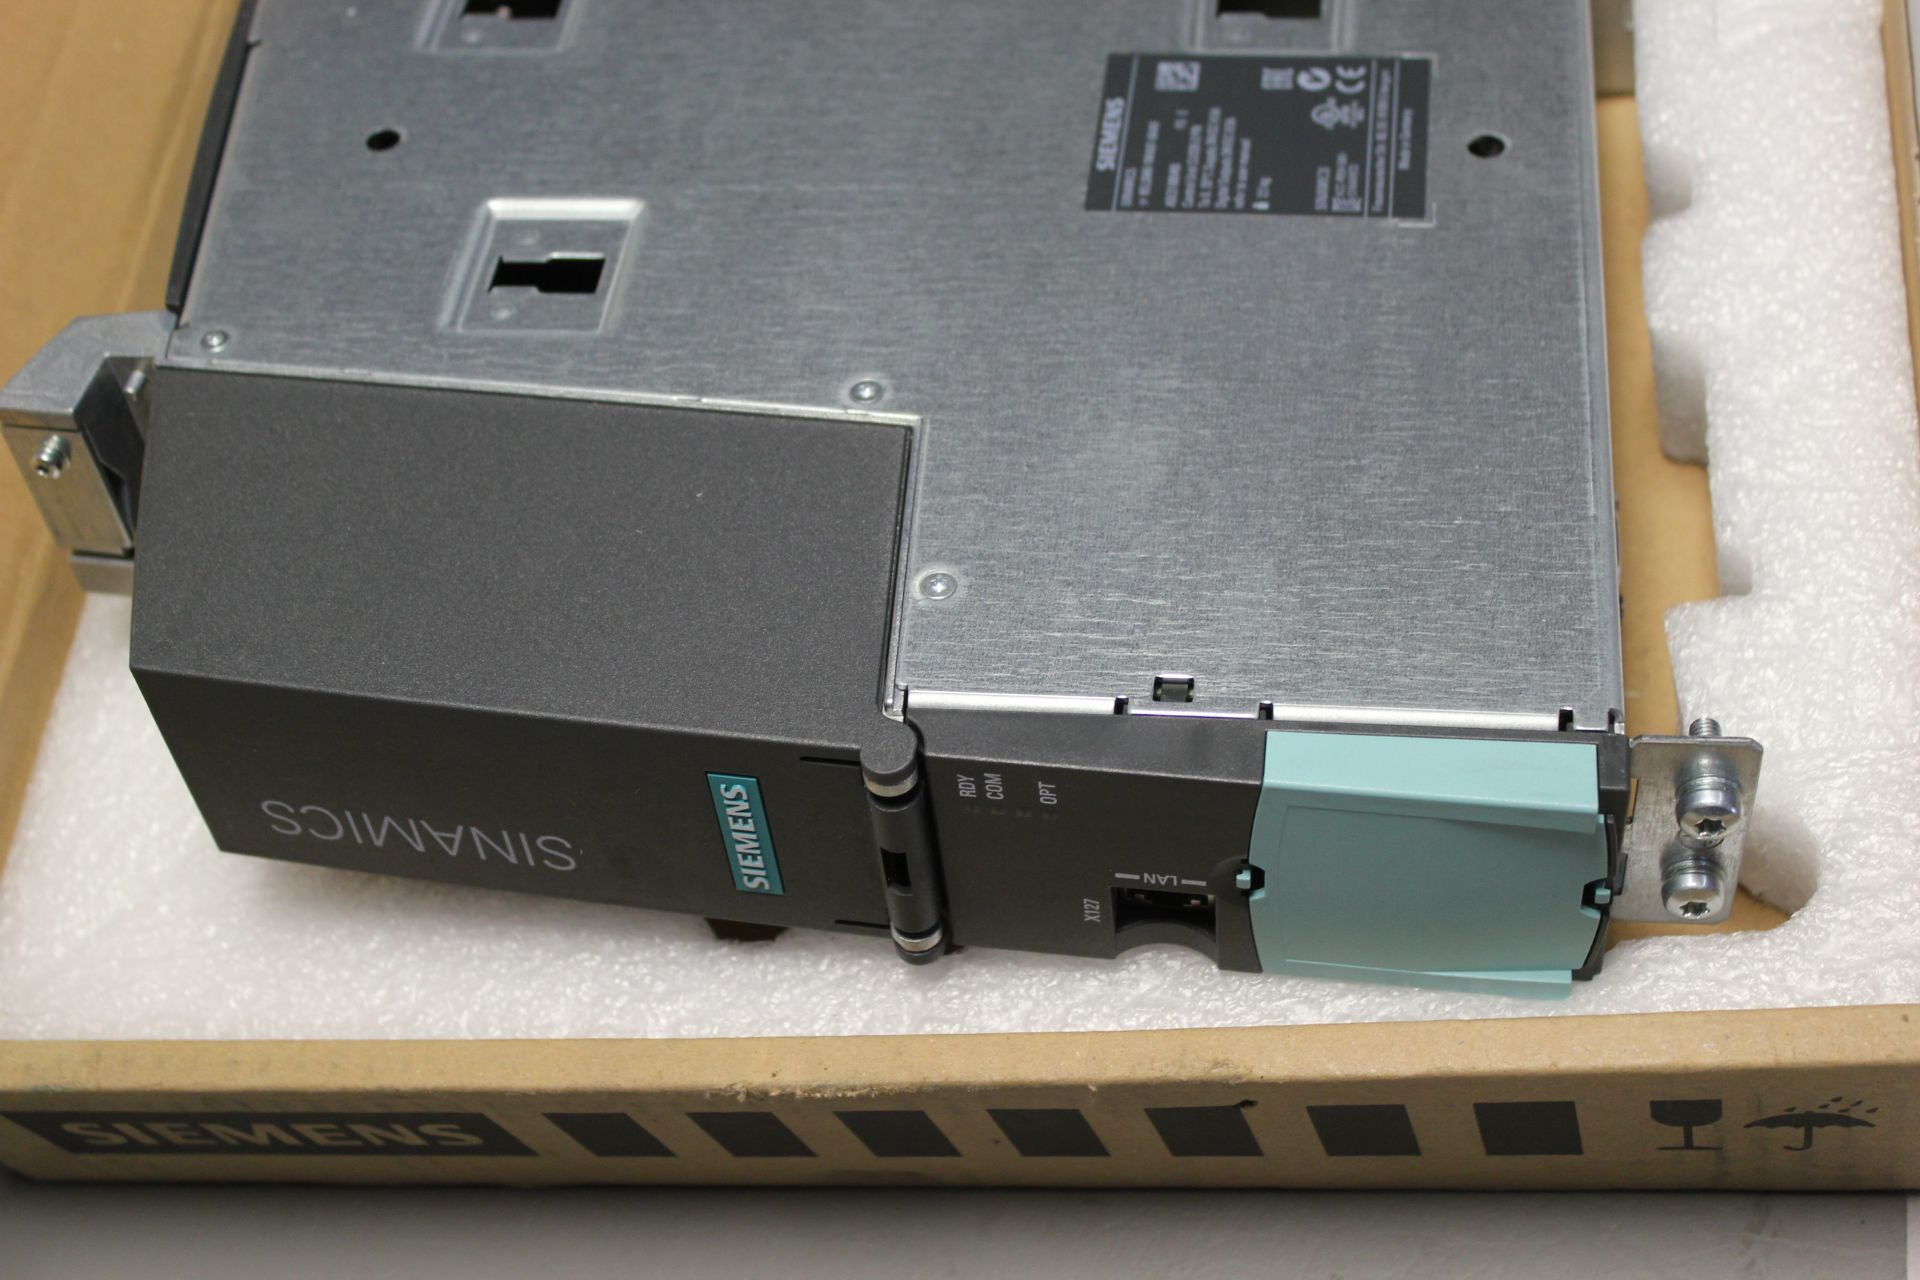 NEW SIEMENS SINAMICS FREQUENCY CONVERTER CONTROL UNIT - Image 6 of 6